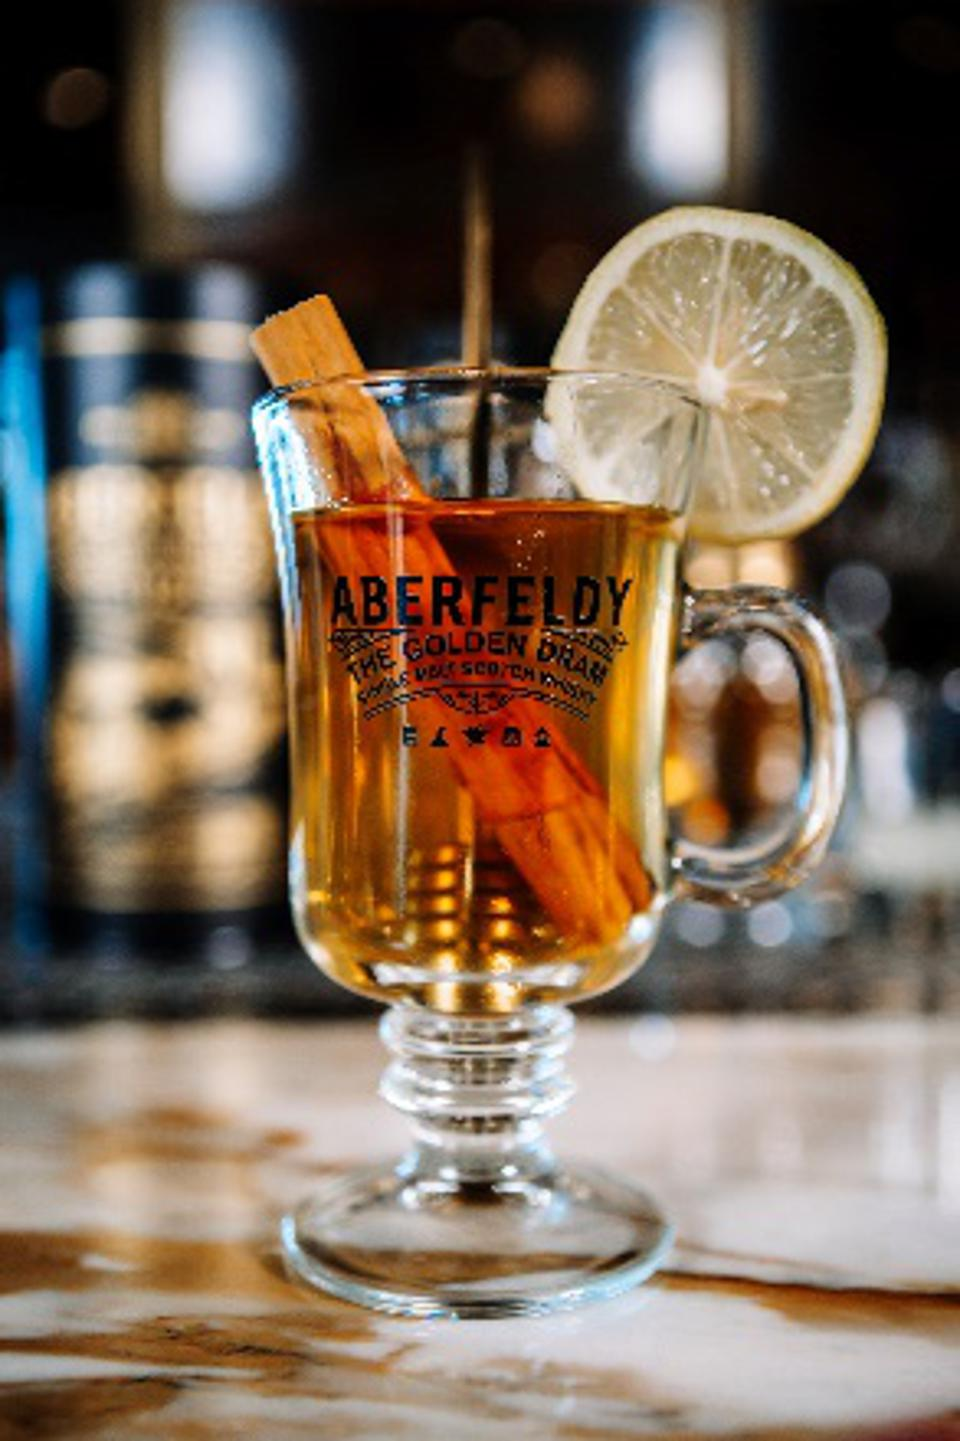 Aberfeldy Golden Hot Toddy